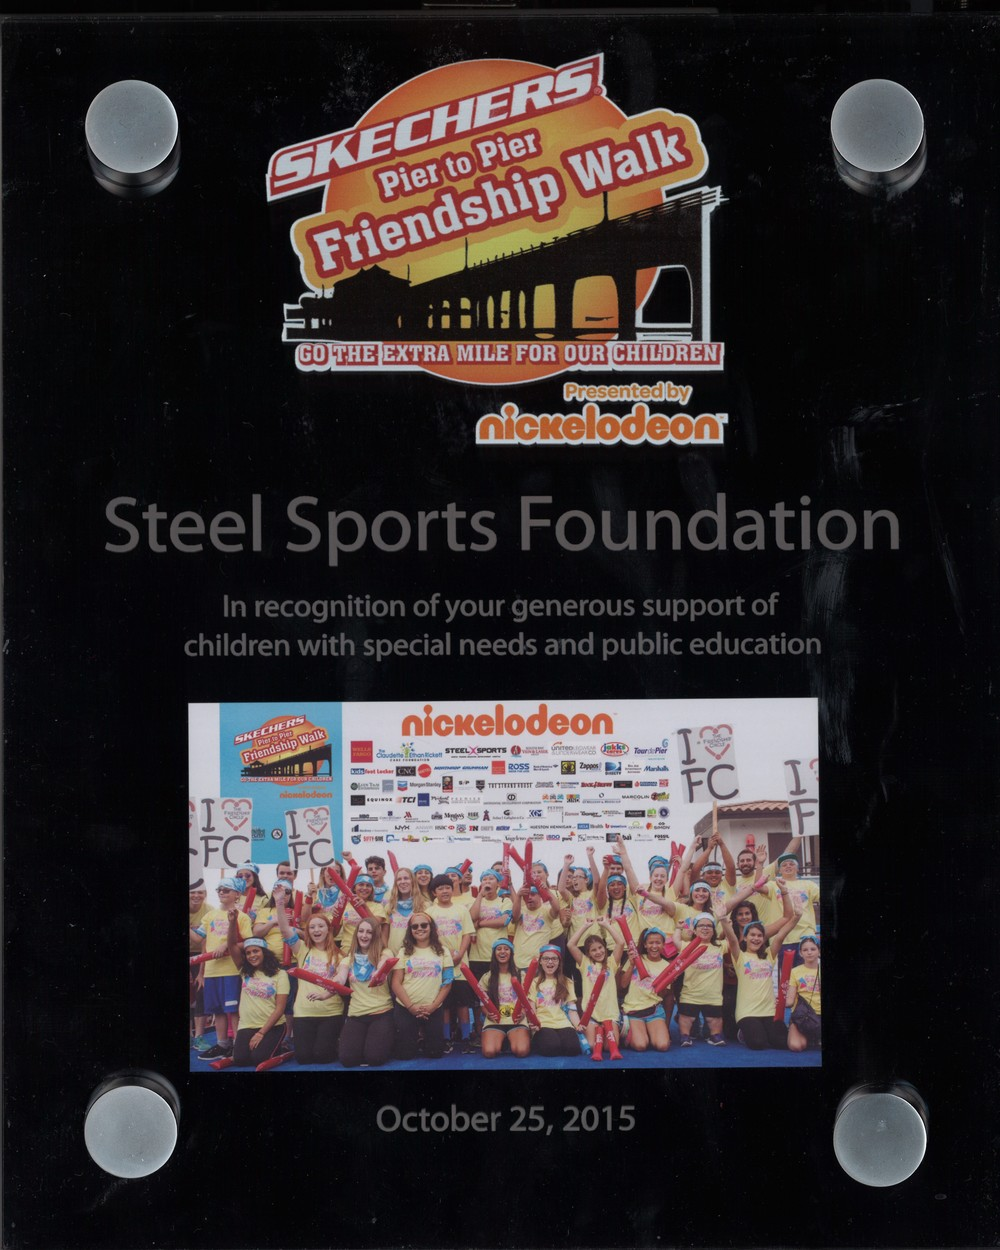 Steel Partners Foundation, in participation with Steel Sports, received a plaque from The SKECHERS Foundation for participating announced that the 2015 SKECHERS Pier to Pier Friendship Walk that broke records and raised over $1.4 million for children with special needs.